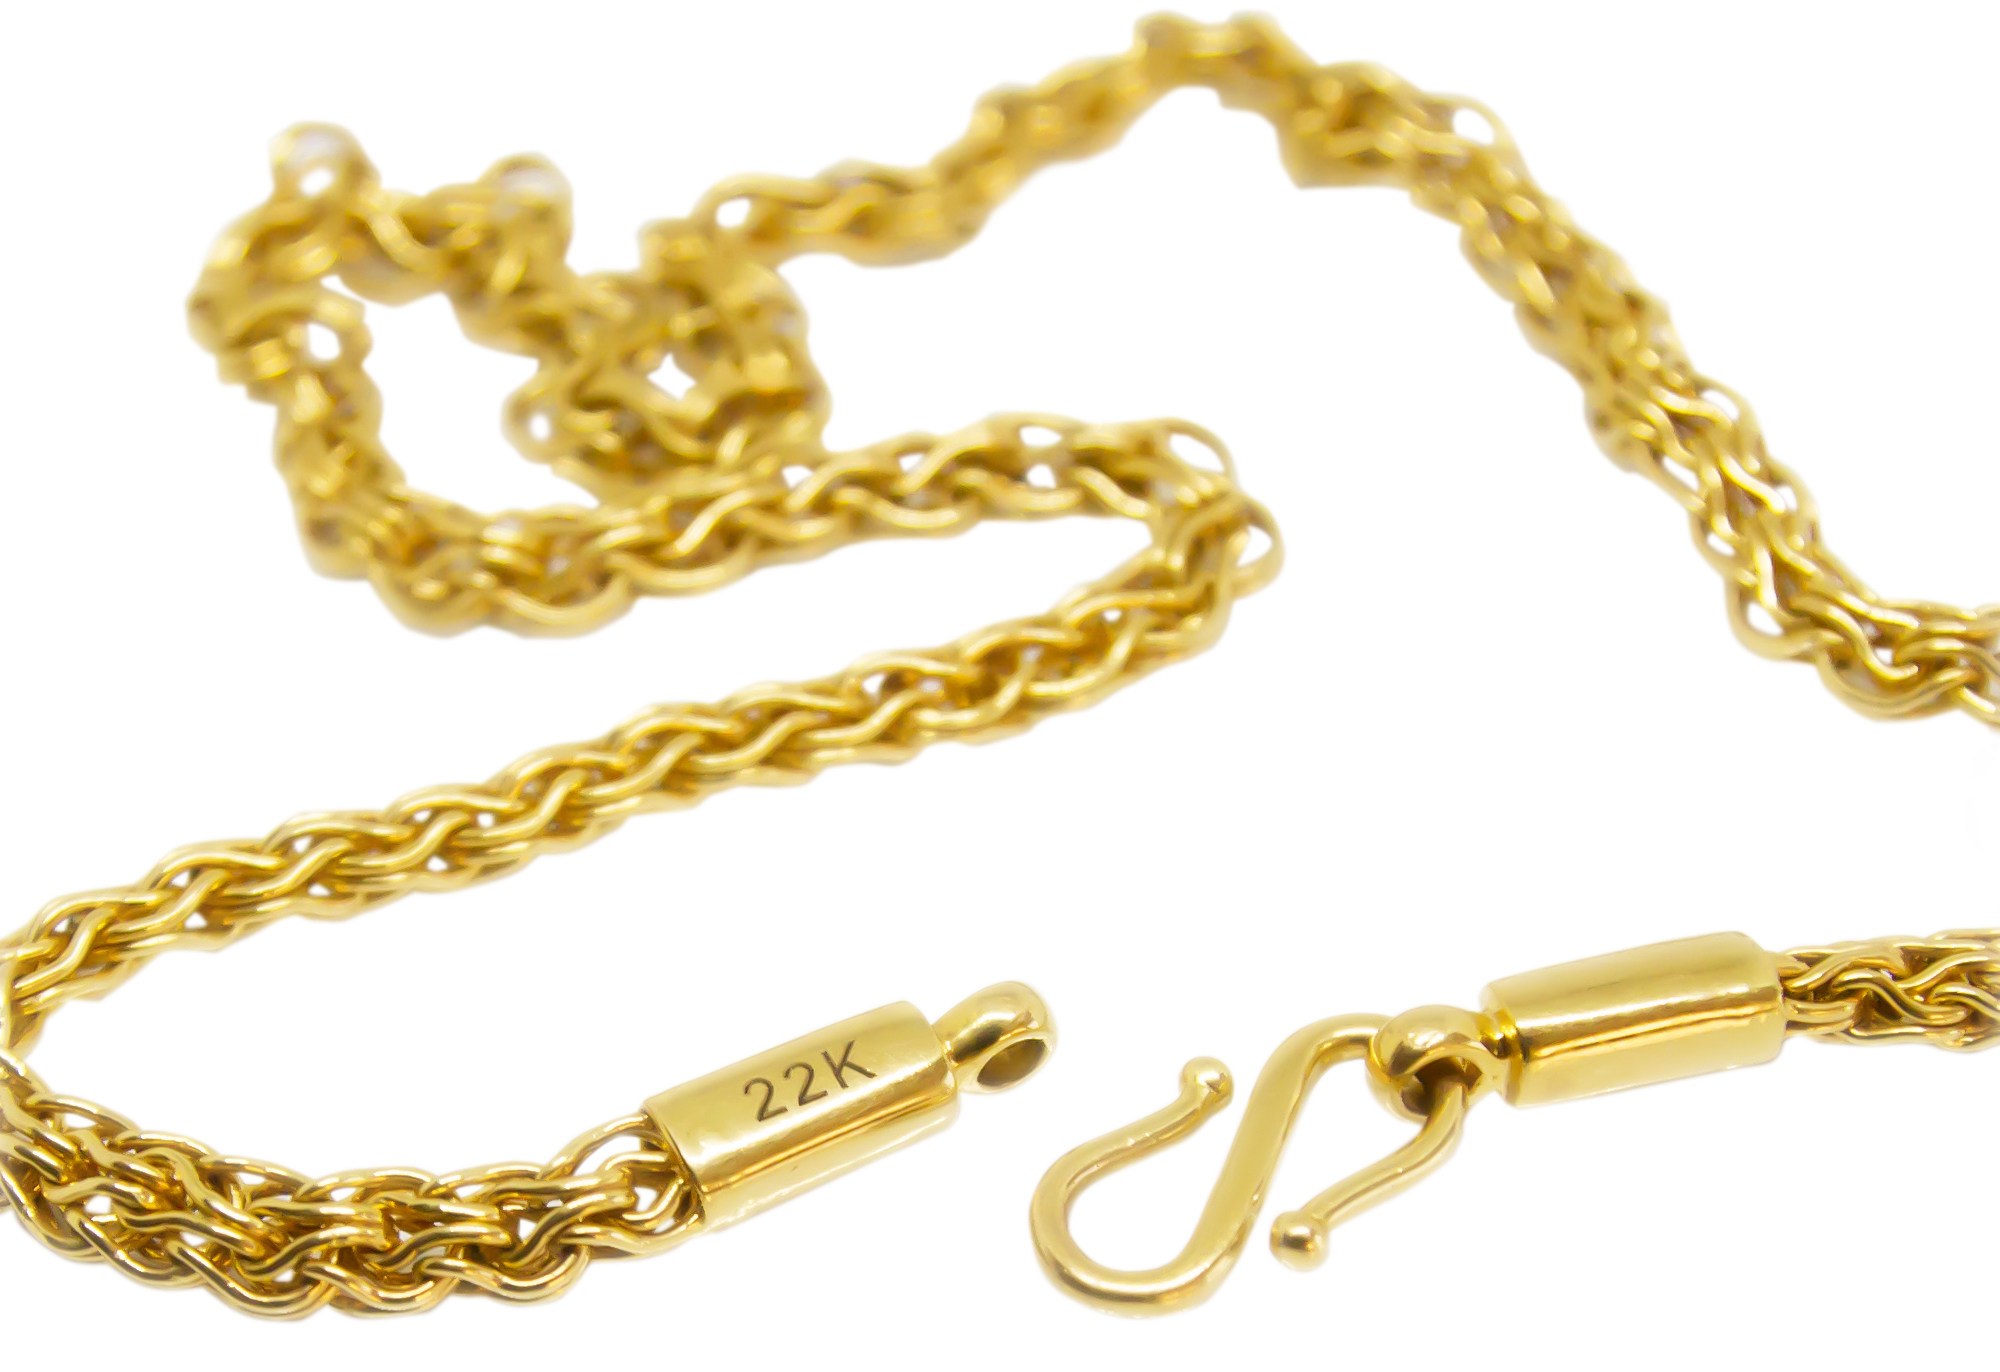 22k and 24k gold jewelry buyers guide 2018